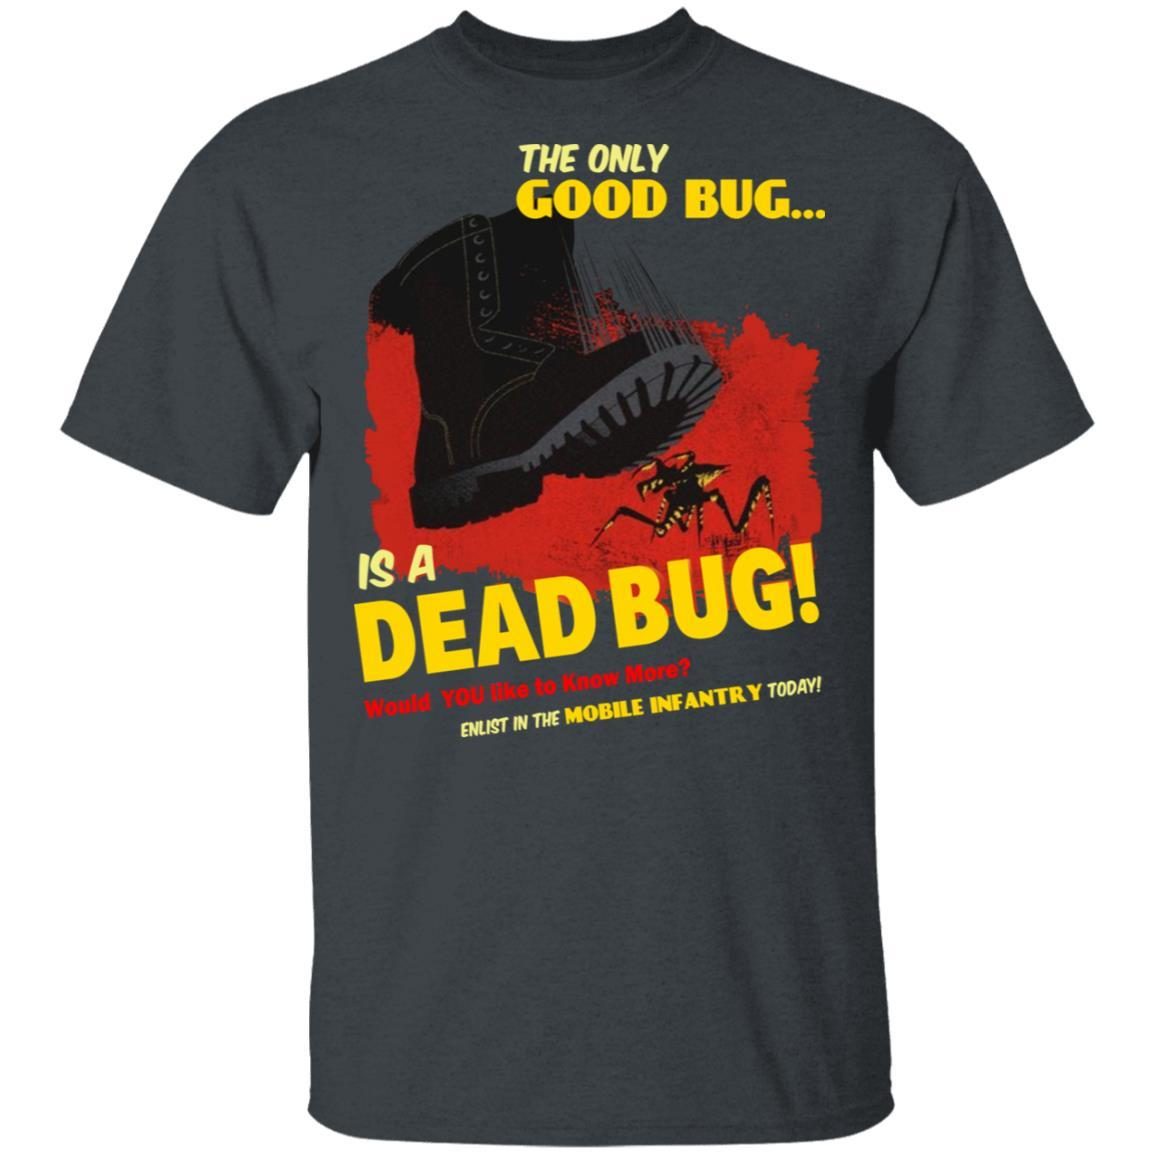 The Only Good Bug Is A Dead Bug Would You Like To Know More Enlist In The Mobile Infantry Today T-Shirts, Hoodies 1049-9957-91821633-48192 - Tee Ript